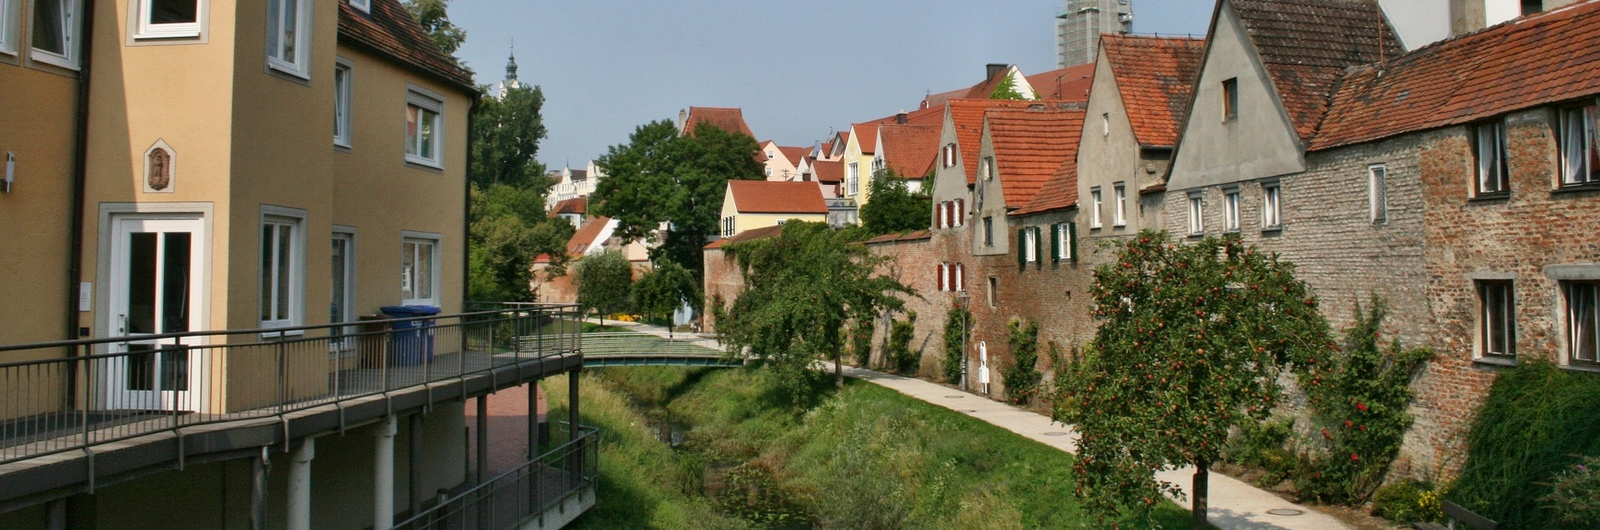 donauwoerth city header